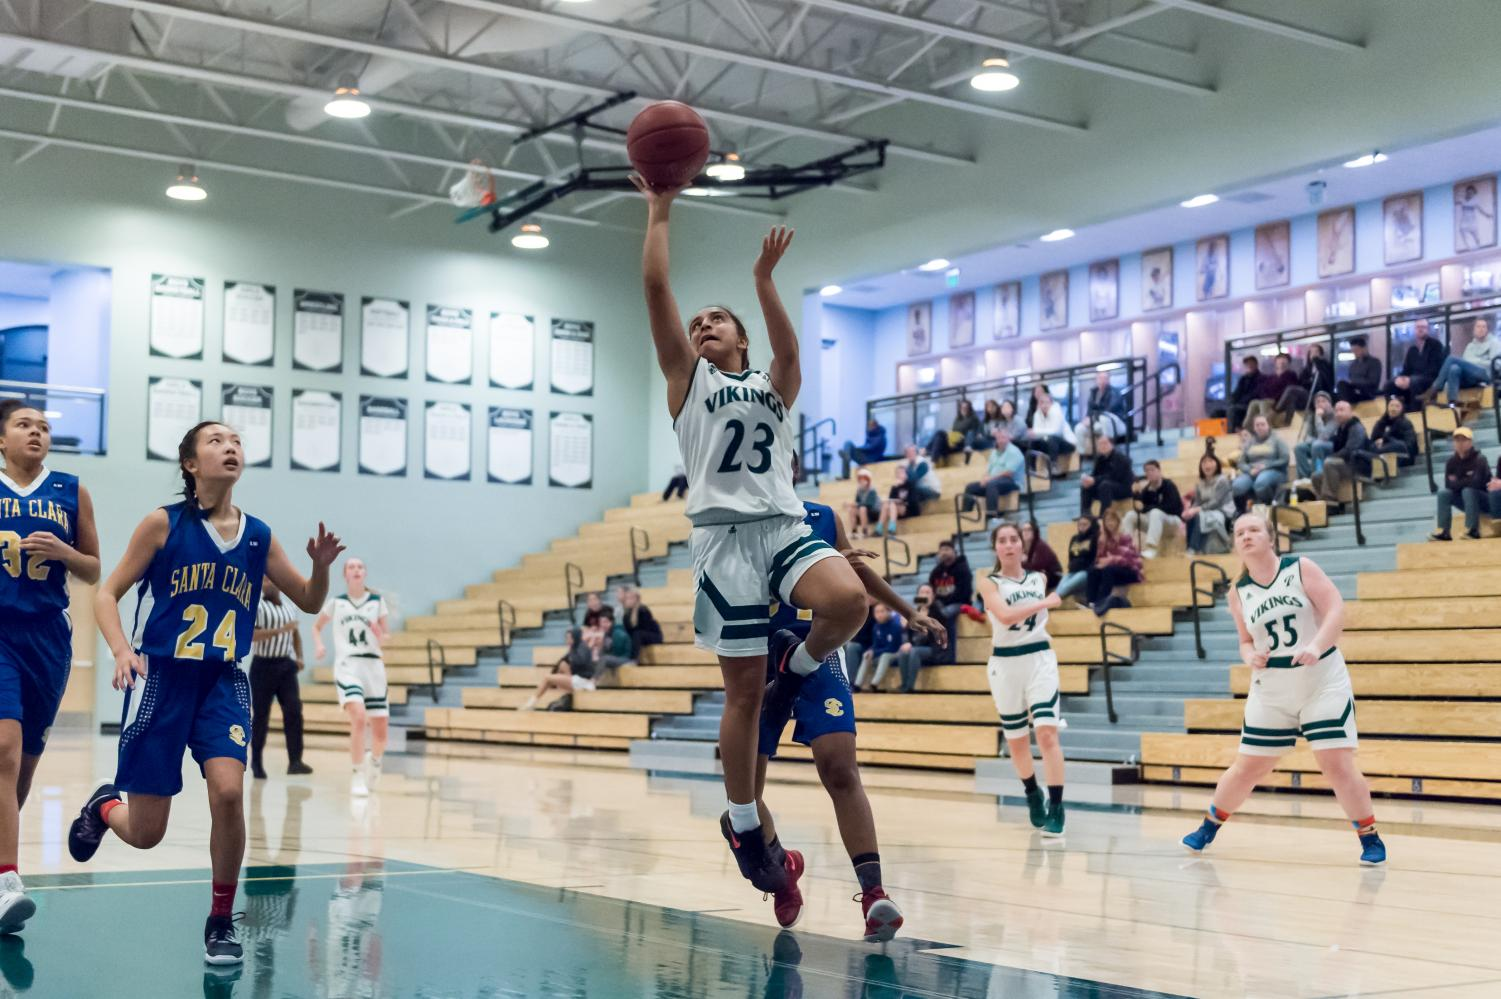 Sophomore Annika Shah goes in for a layup at a game against Santa Clara on Jan. 4.  Photo by David Hickey